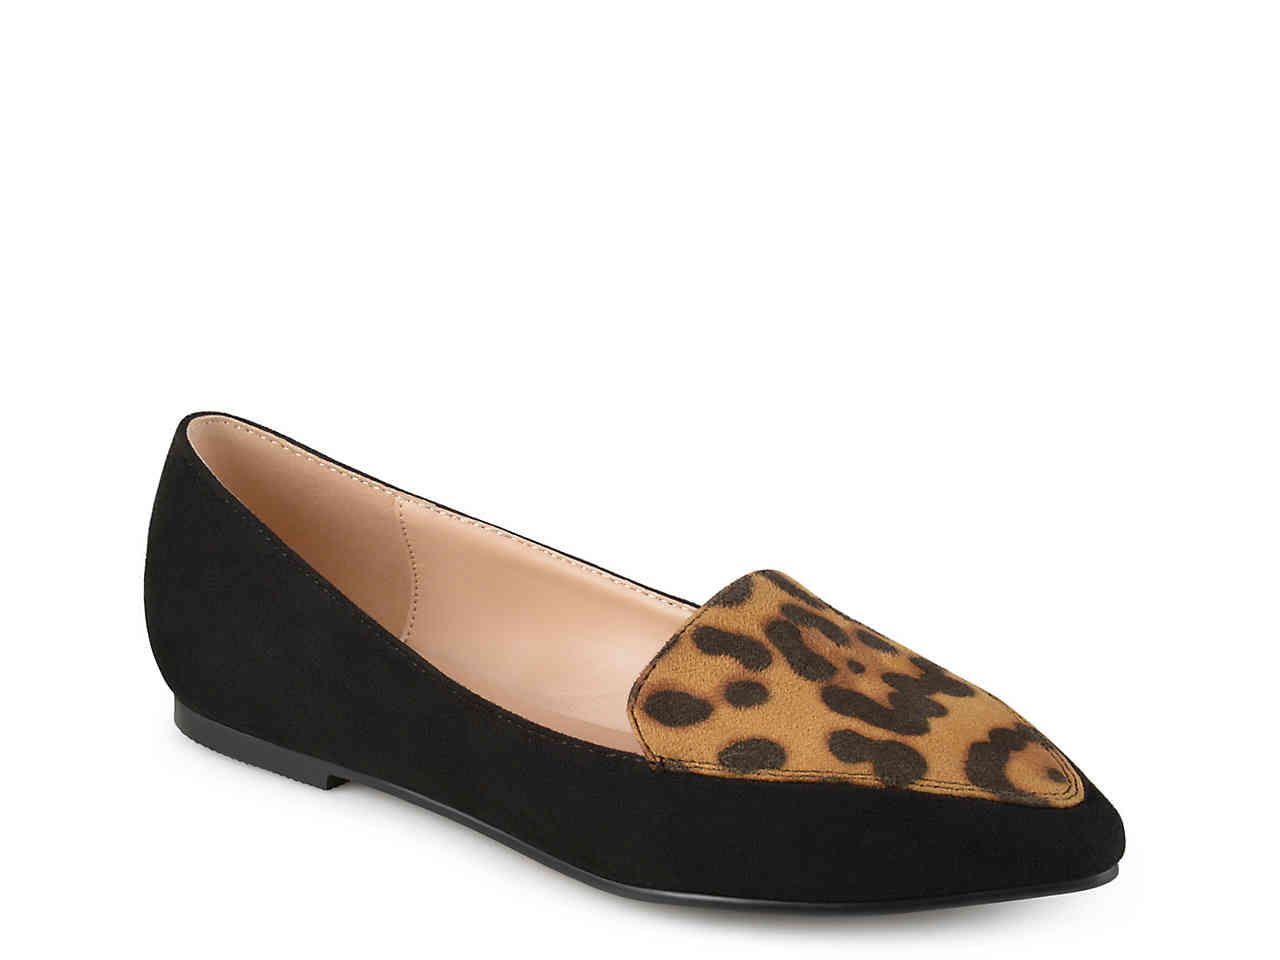 Loafers, Dsw shoes, Leopard print flats